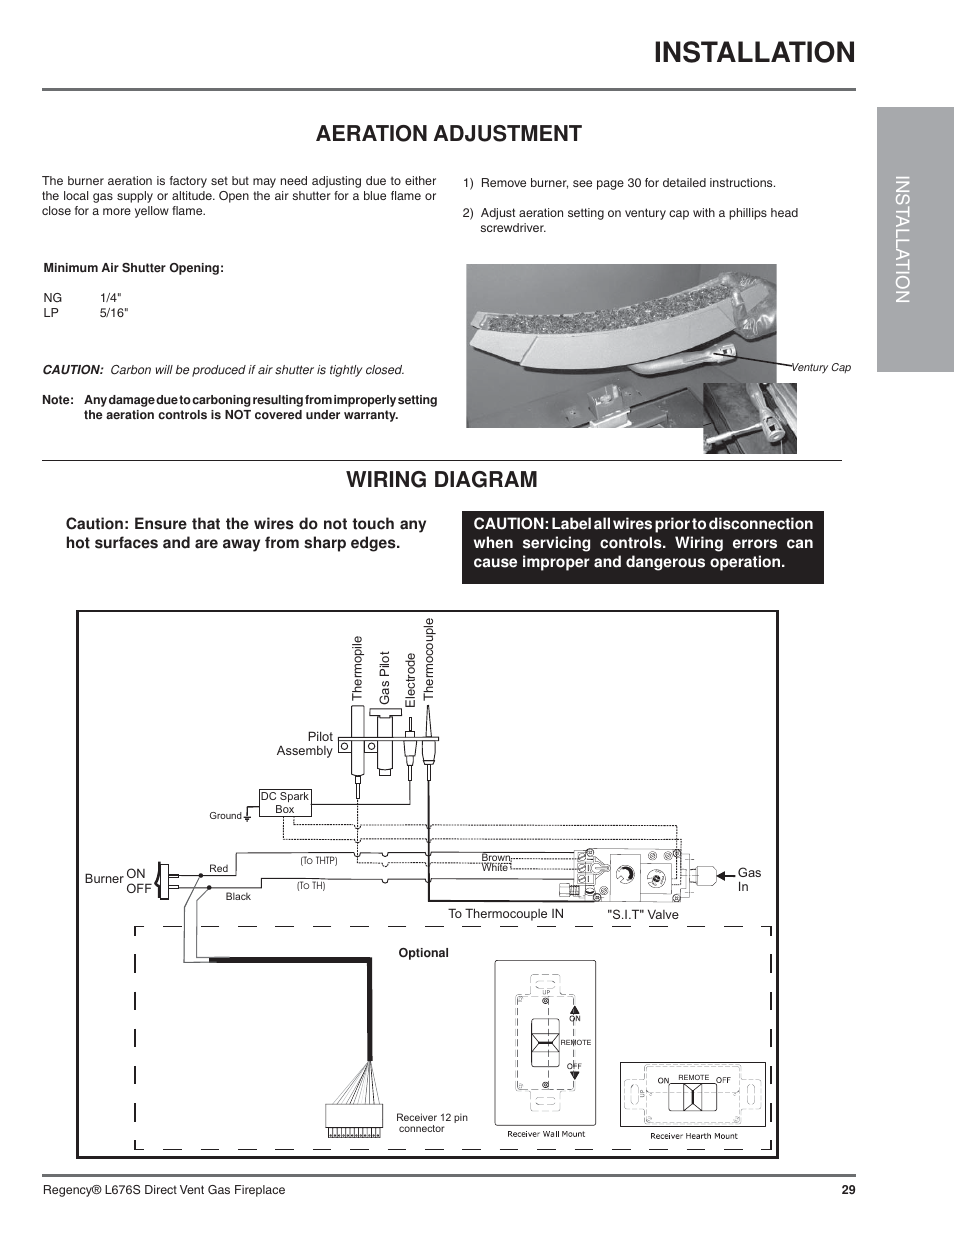 Wiring Diagram For Ga Fireplace